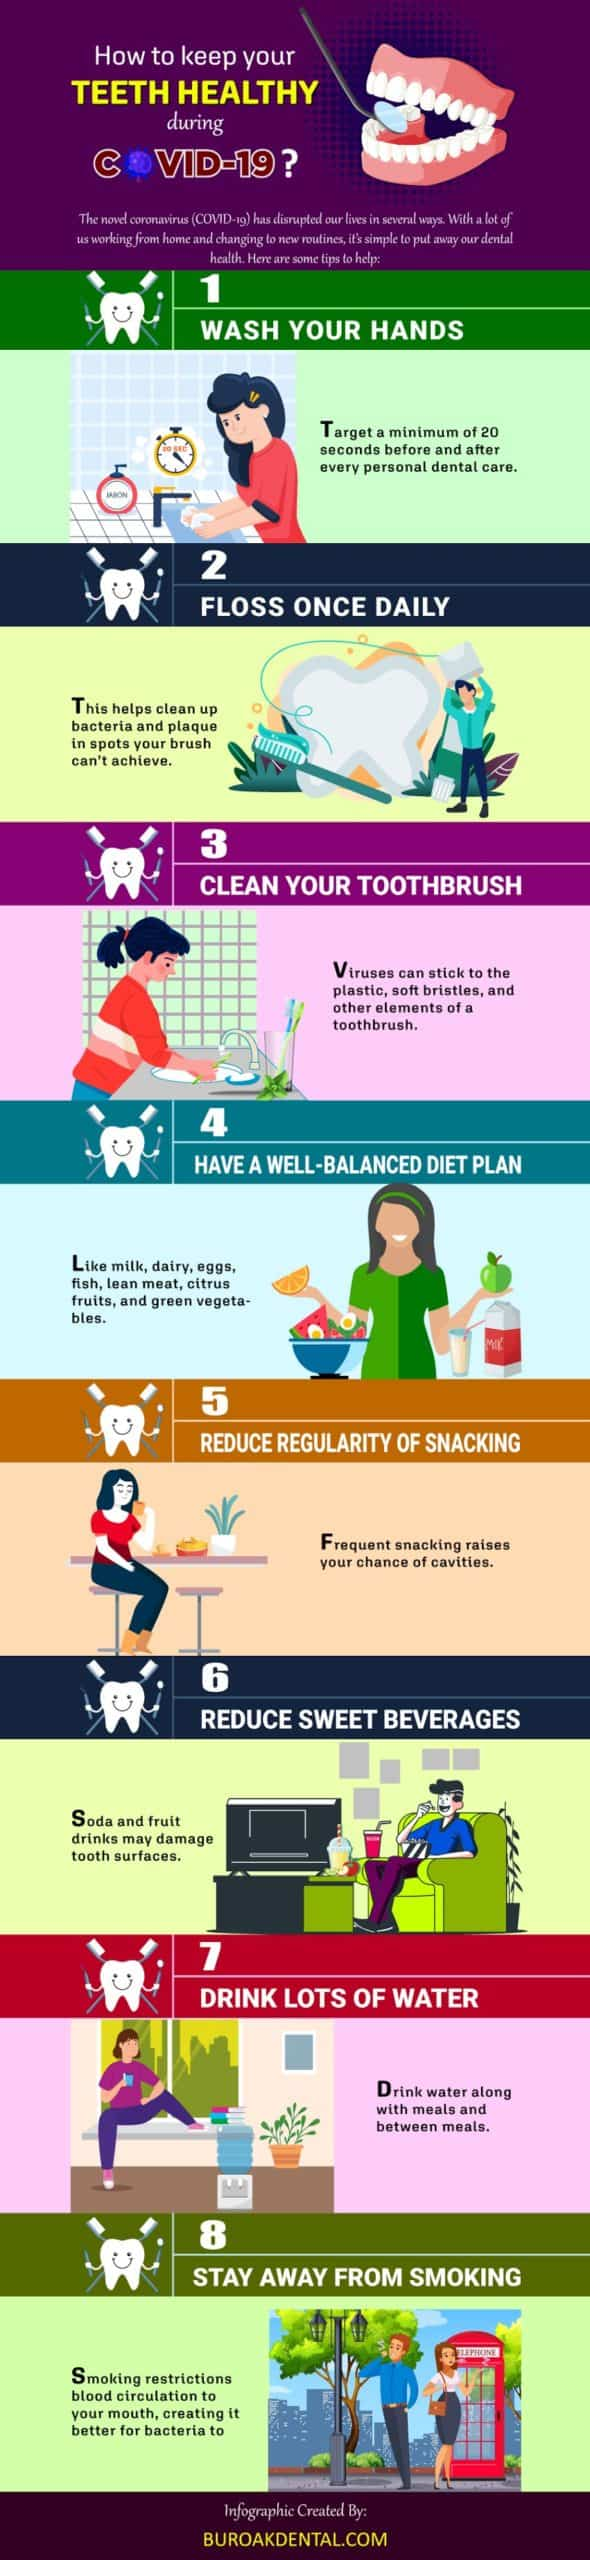 How to Keep Your Teeth Healthy During COVID-19 [Infographic]